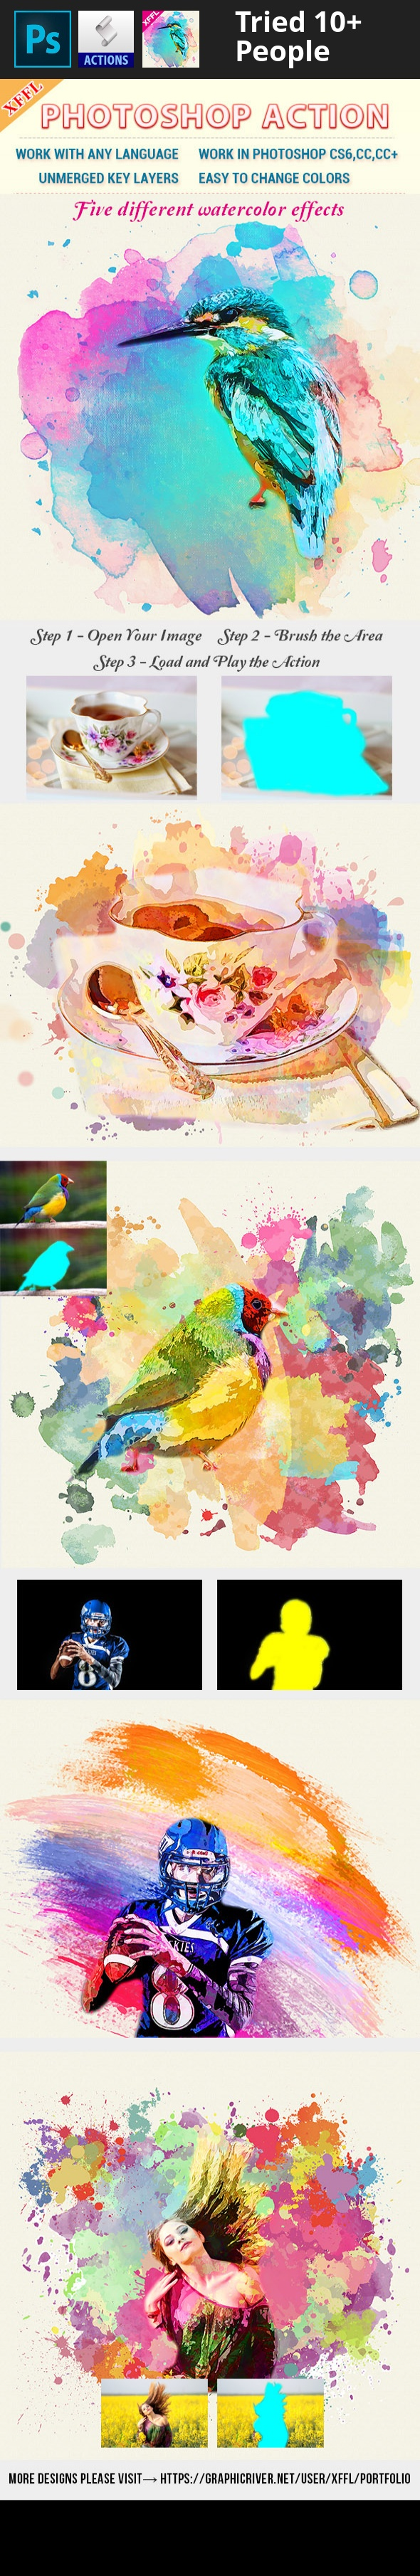 Watercolor Art V1 Photoshop Action Digital Art Tutorial